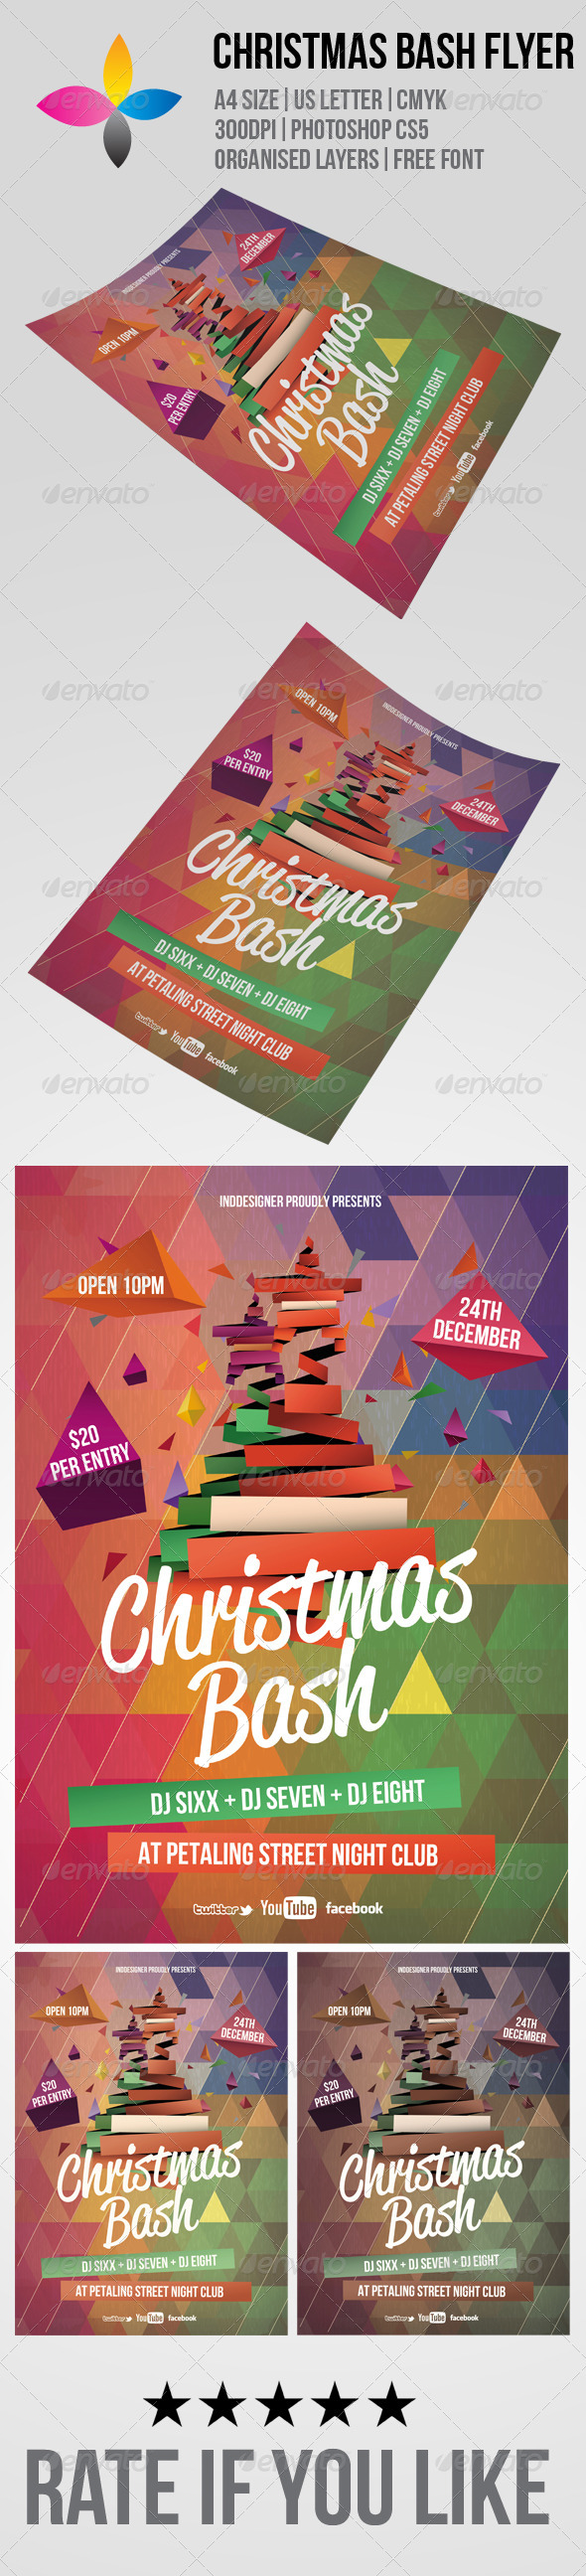 GraphicRiver Christmas Bash Flyer 6126619